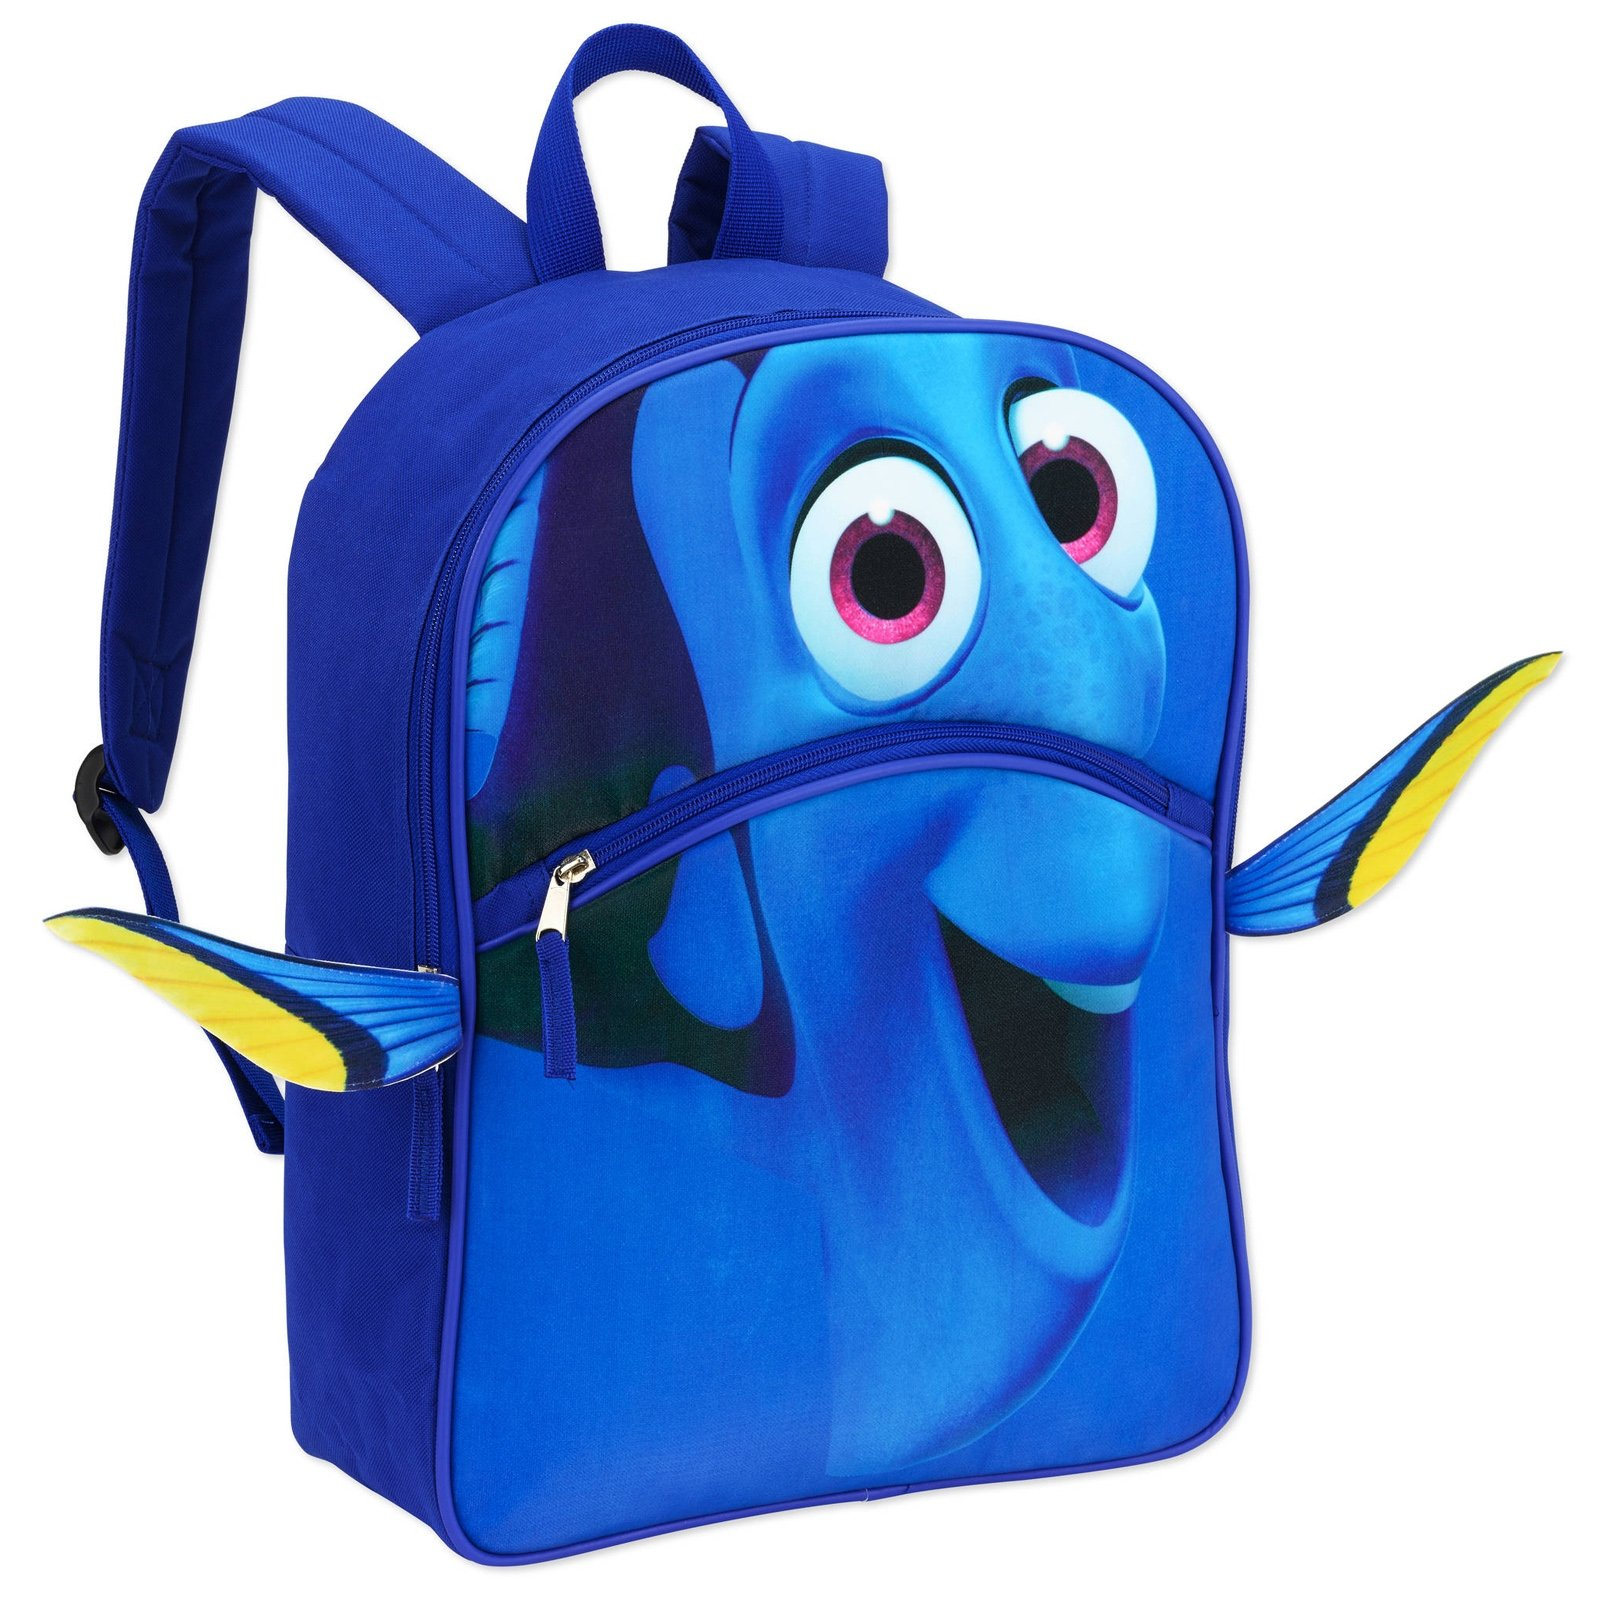 "Finding Dory 16"" Cargo Backpack ""Dory"" School Bag"